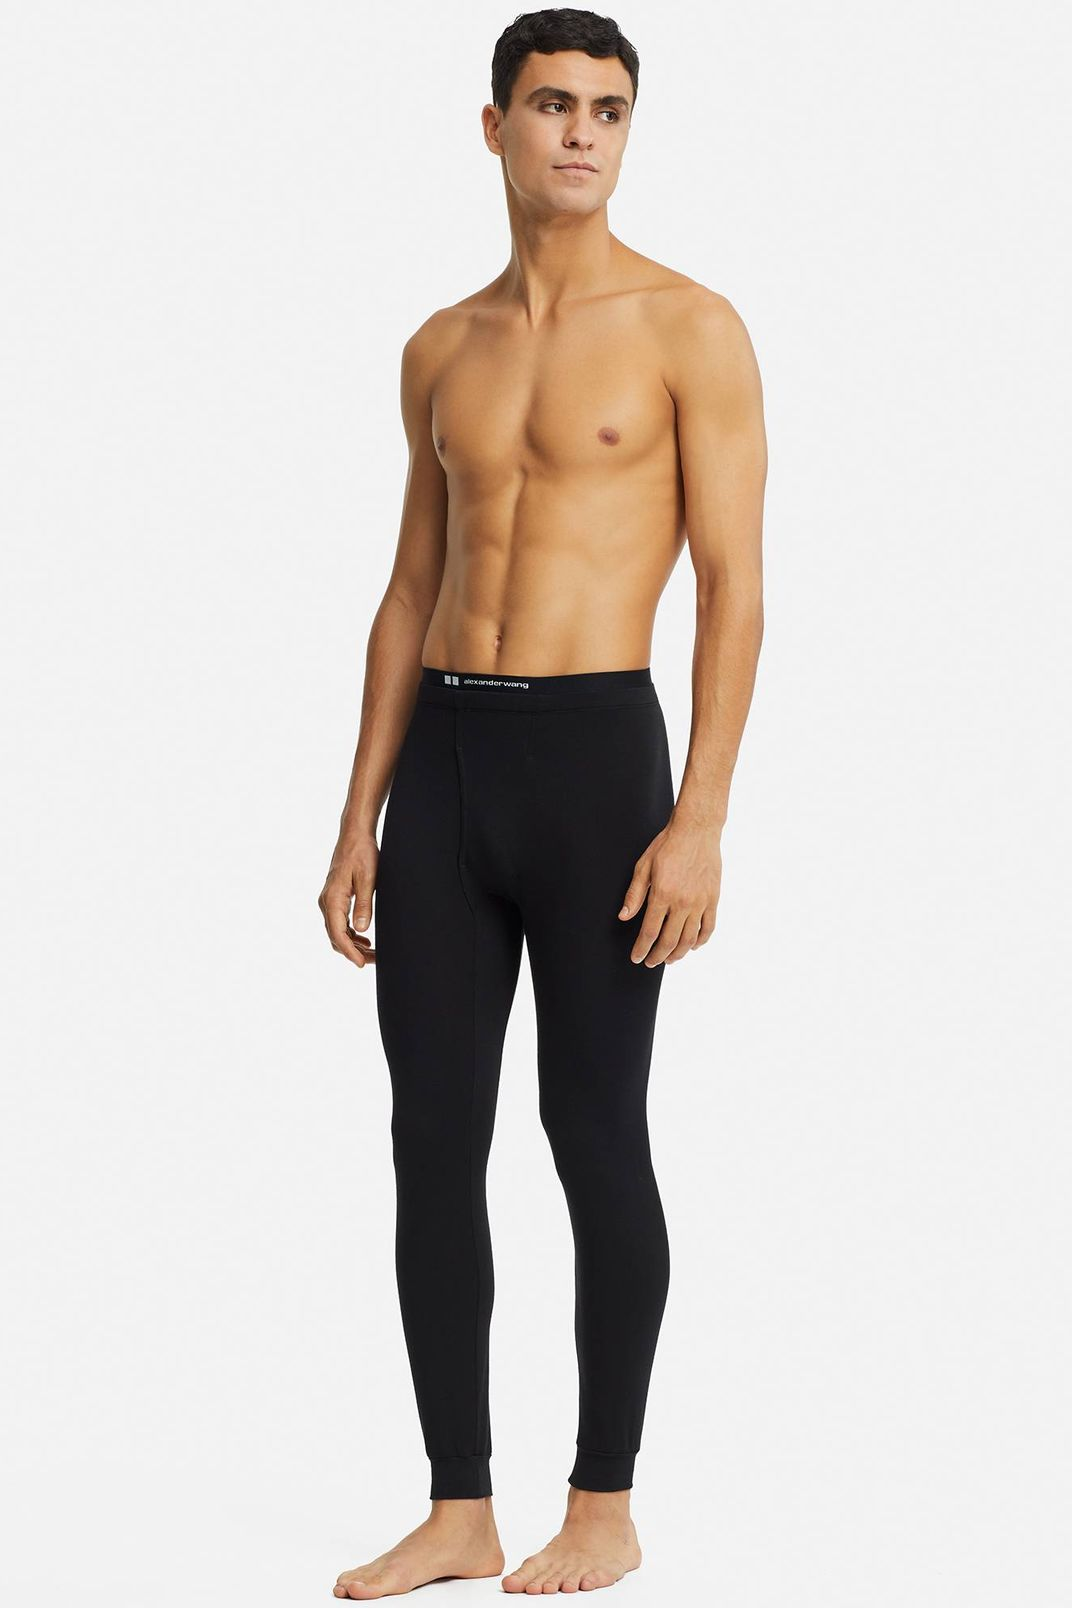 Uniqlo Men's Heattech Extra Warm Long Johns